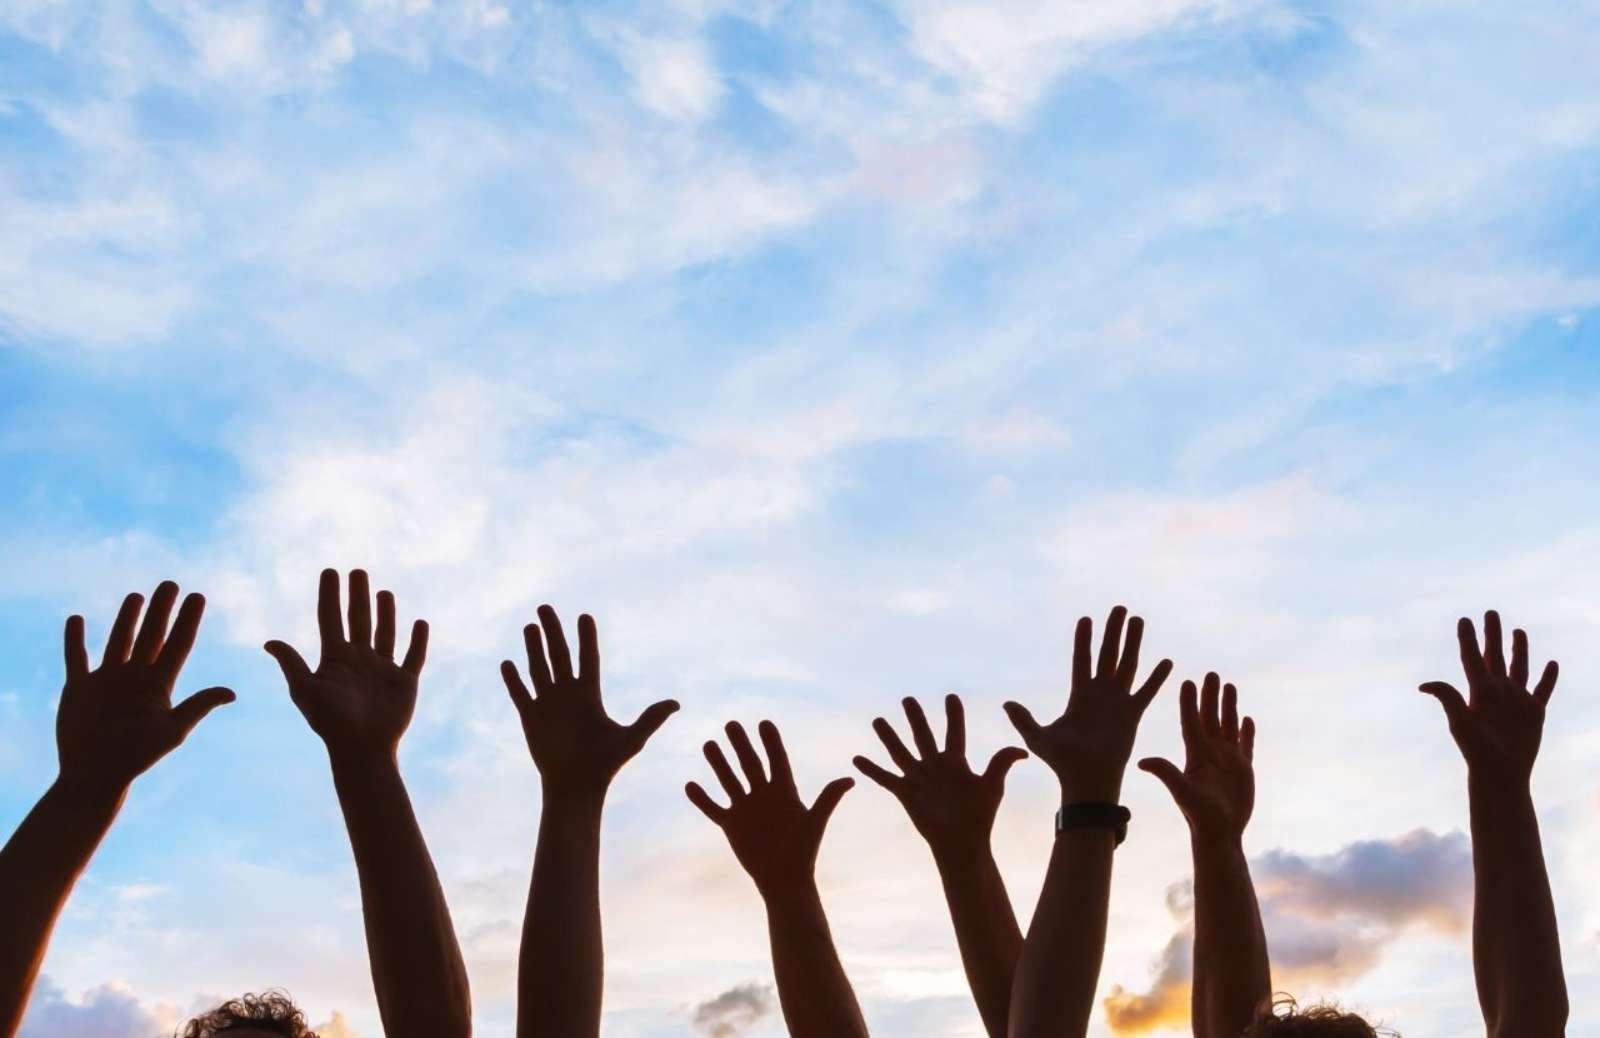 Raised arms and hands against a blue sky